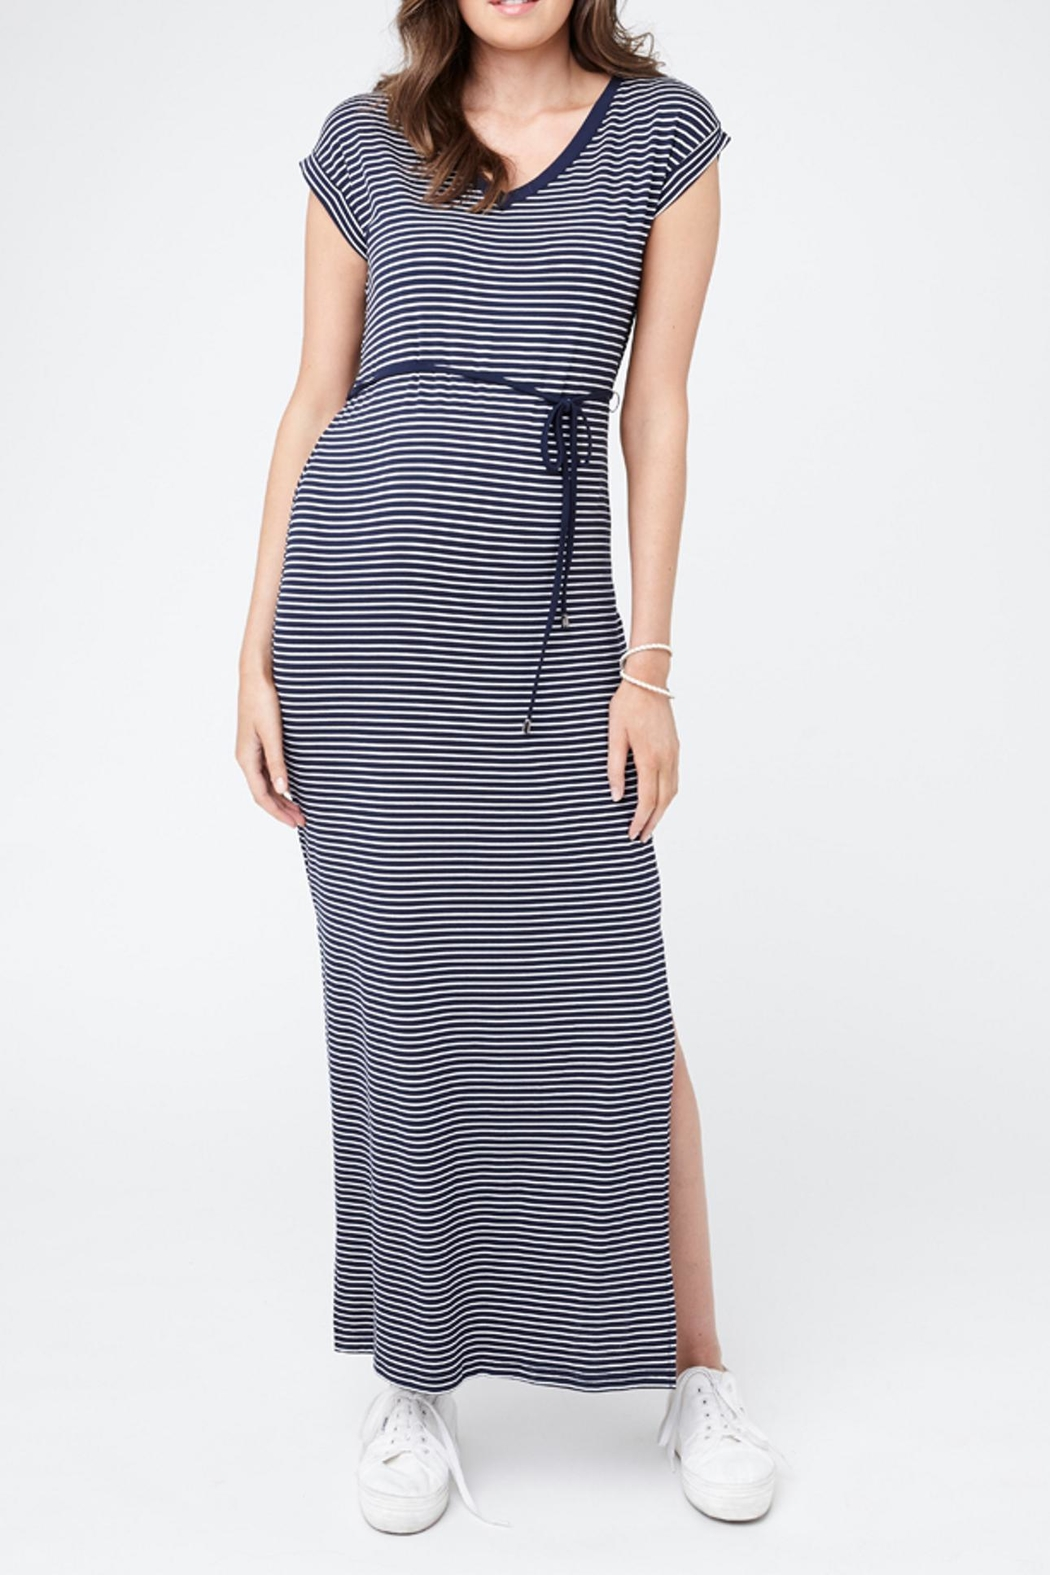 Ripe Maternity Meghan Maxi Dress - Front Cropped Image